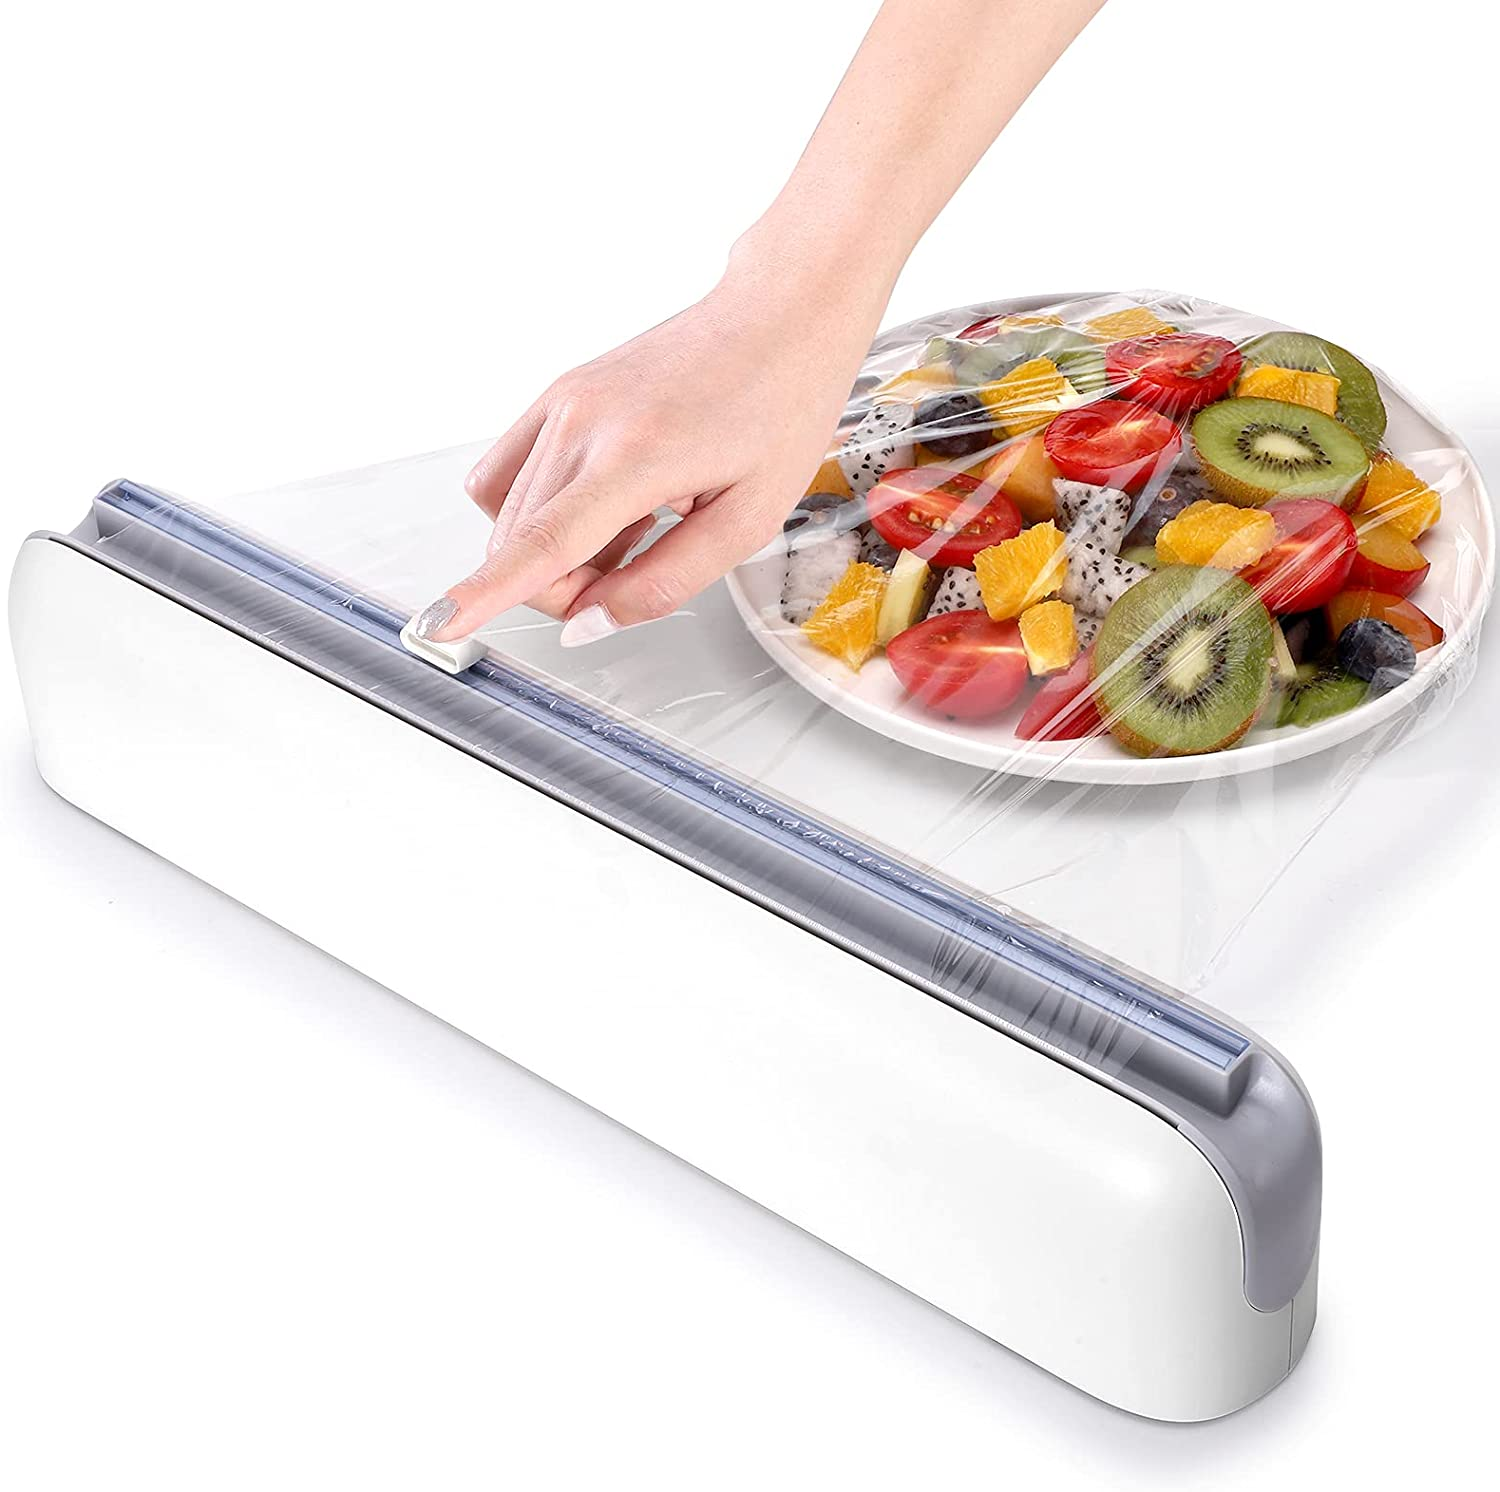 Plastic Wrap Dispenser with Cutter,Plastic Food Wrap Dispenser with Slide Cutter Refillable Cling Film Dispenser with 250' of Professional BPA Free Cling Film.